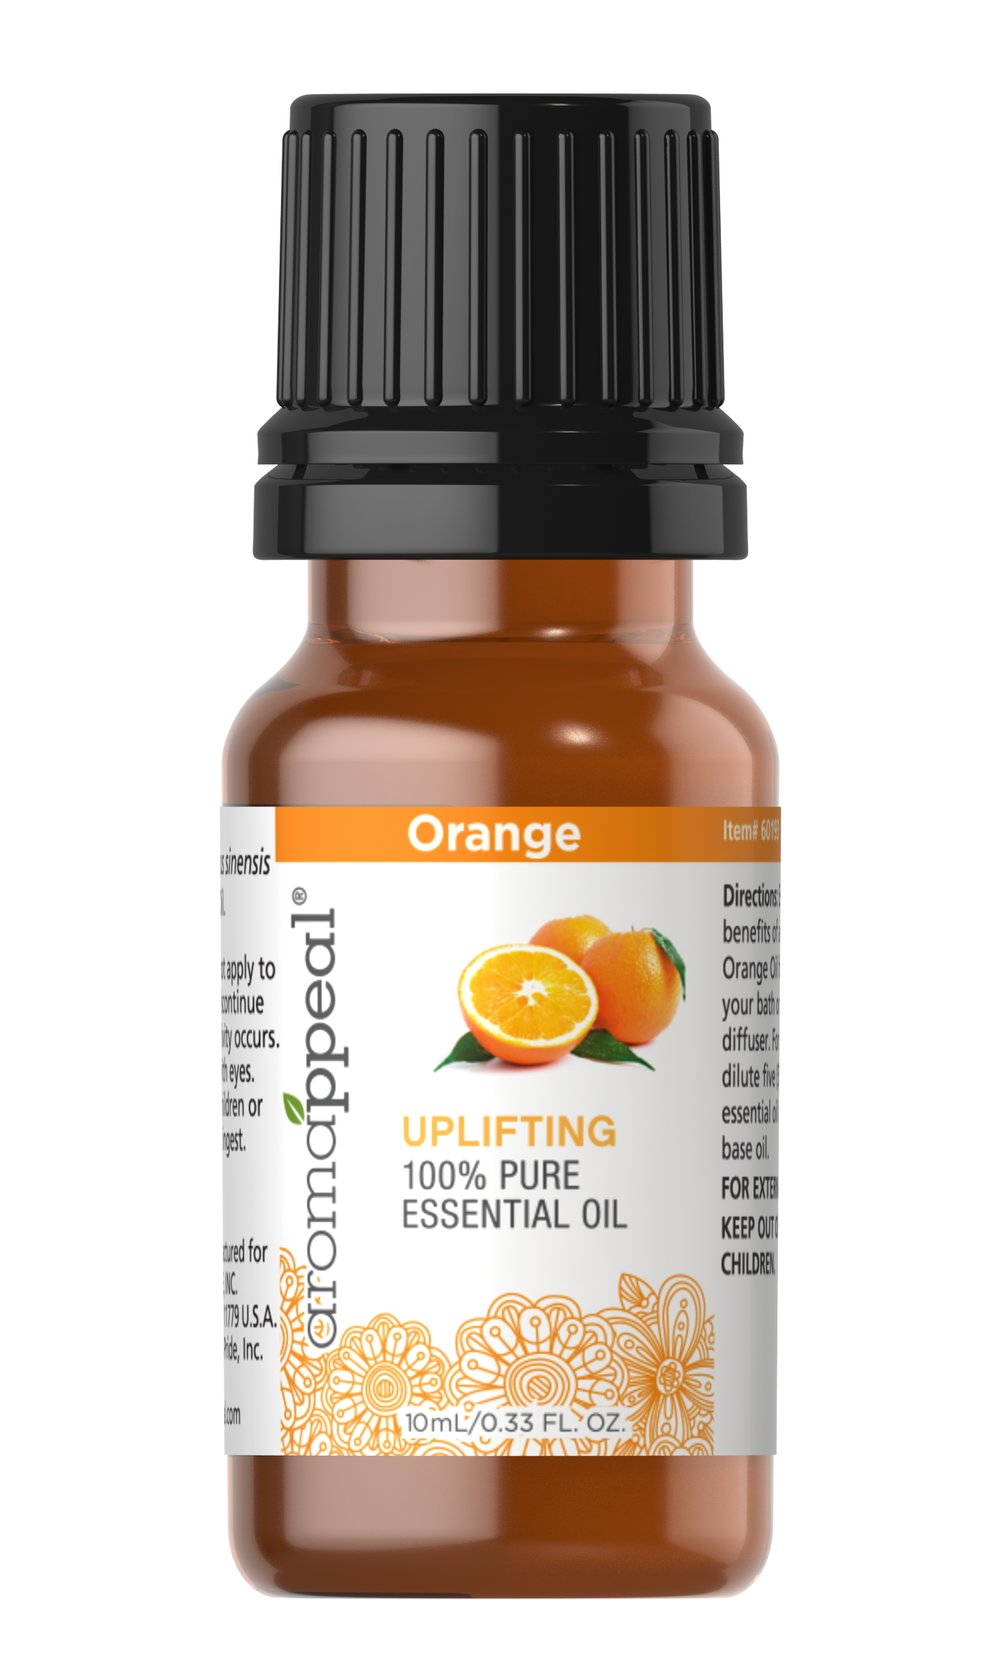 Orange 100% Pure Essential Oil Rejuvenating and scrumptious especially when rubbed on the temples. One of the most refreshing and uplifting of oils. Supports digestion, circulation, skin soothing, neurotonic for overall brain and nervous system health. 10 ml Oil  $7.99